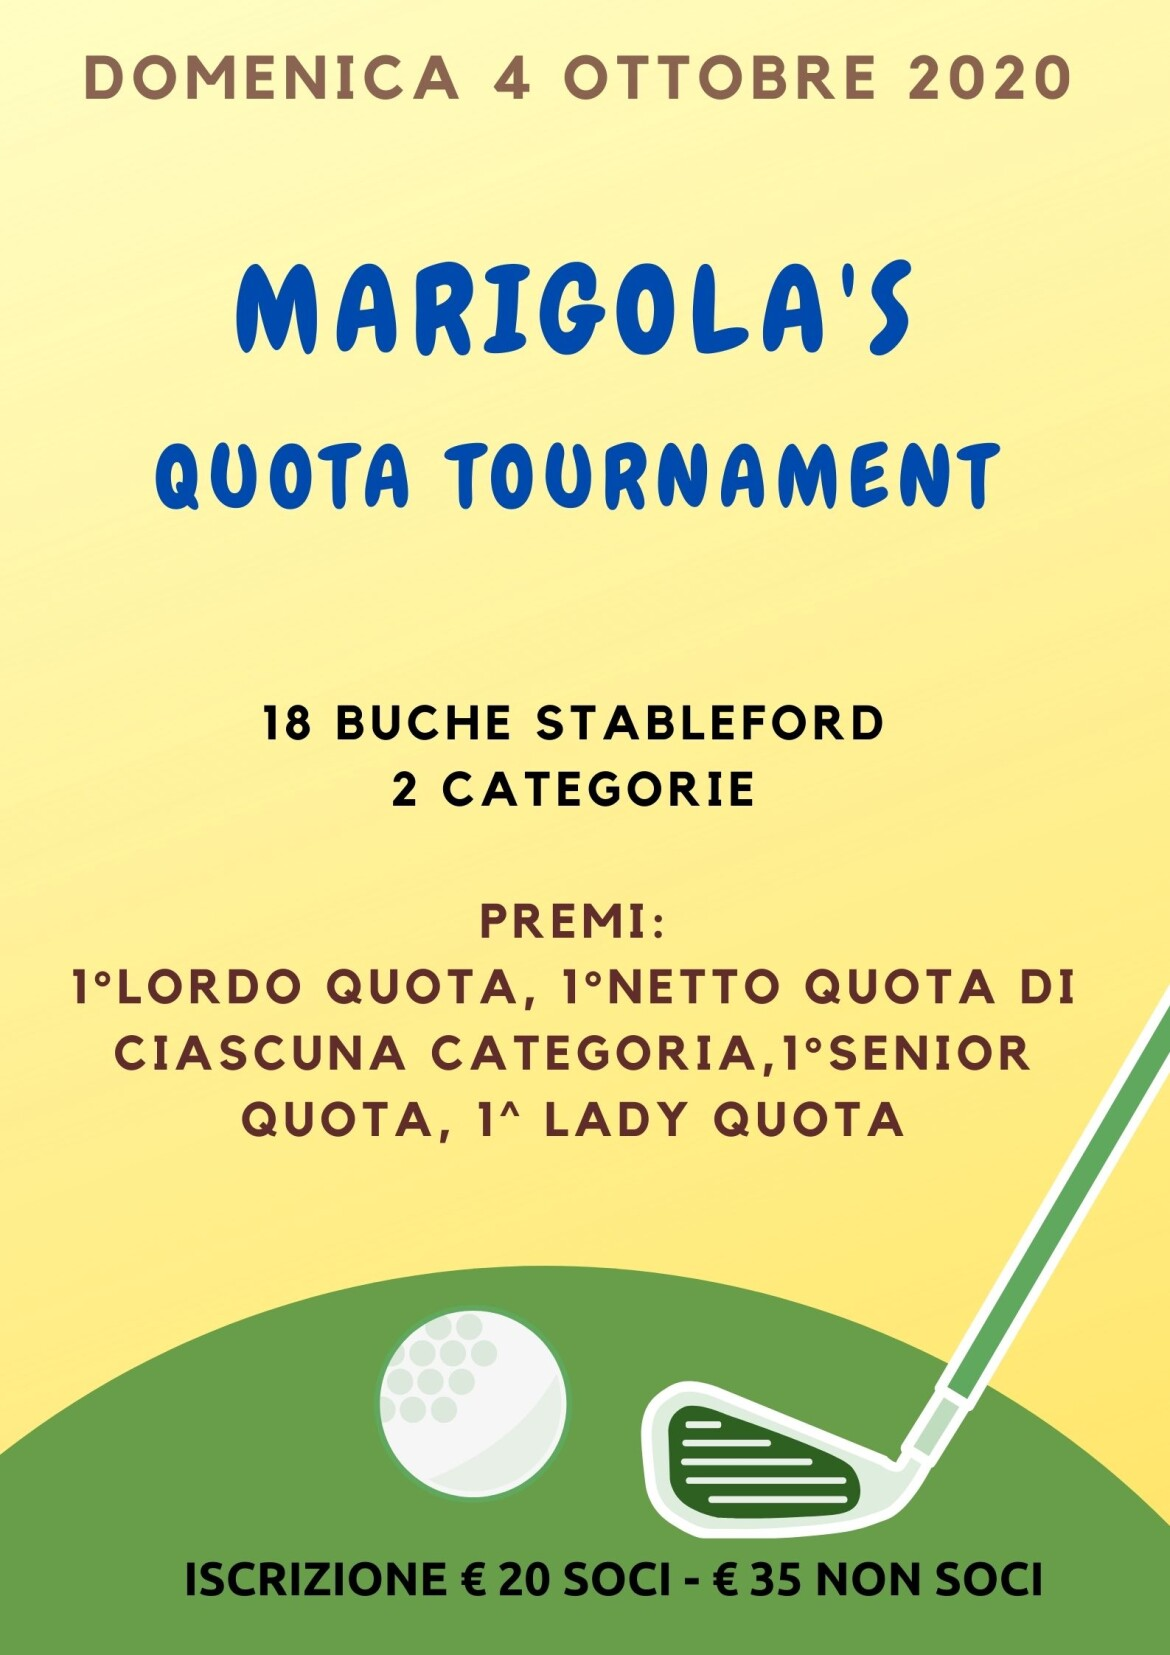 MARIGOLA'S QUOTA TOURNAMENTS